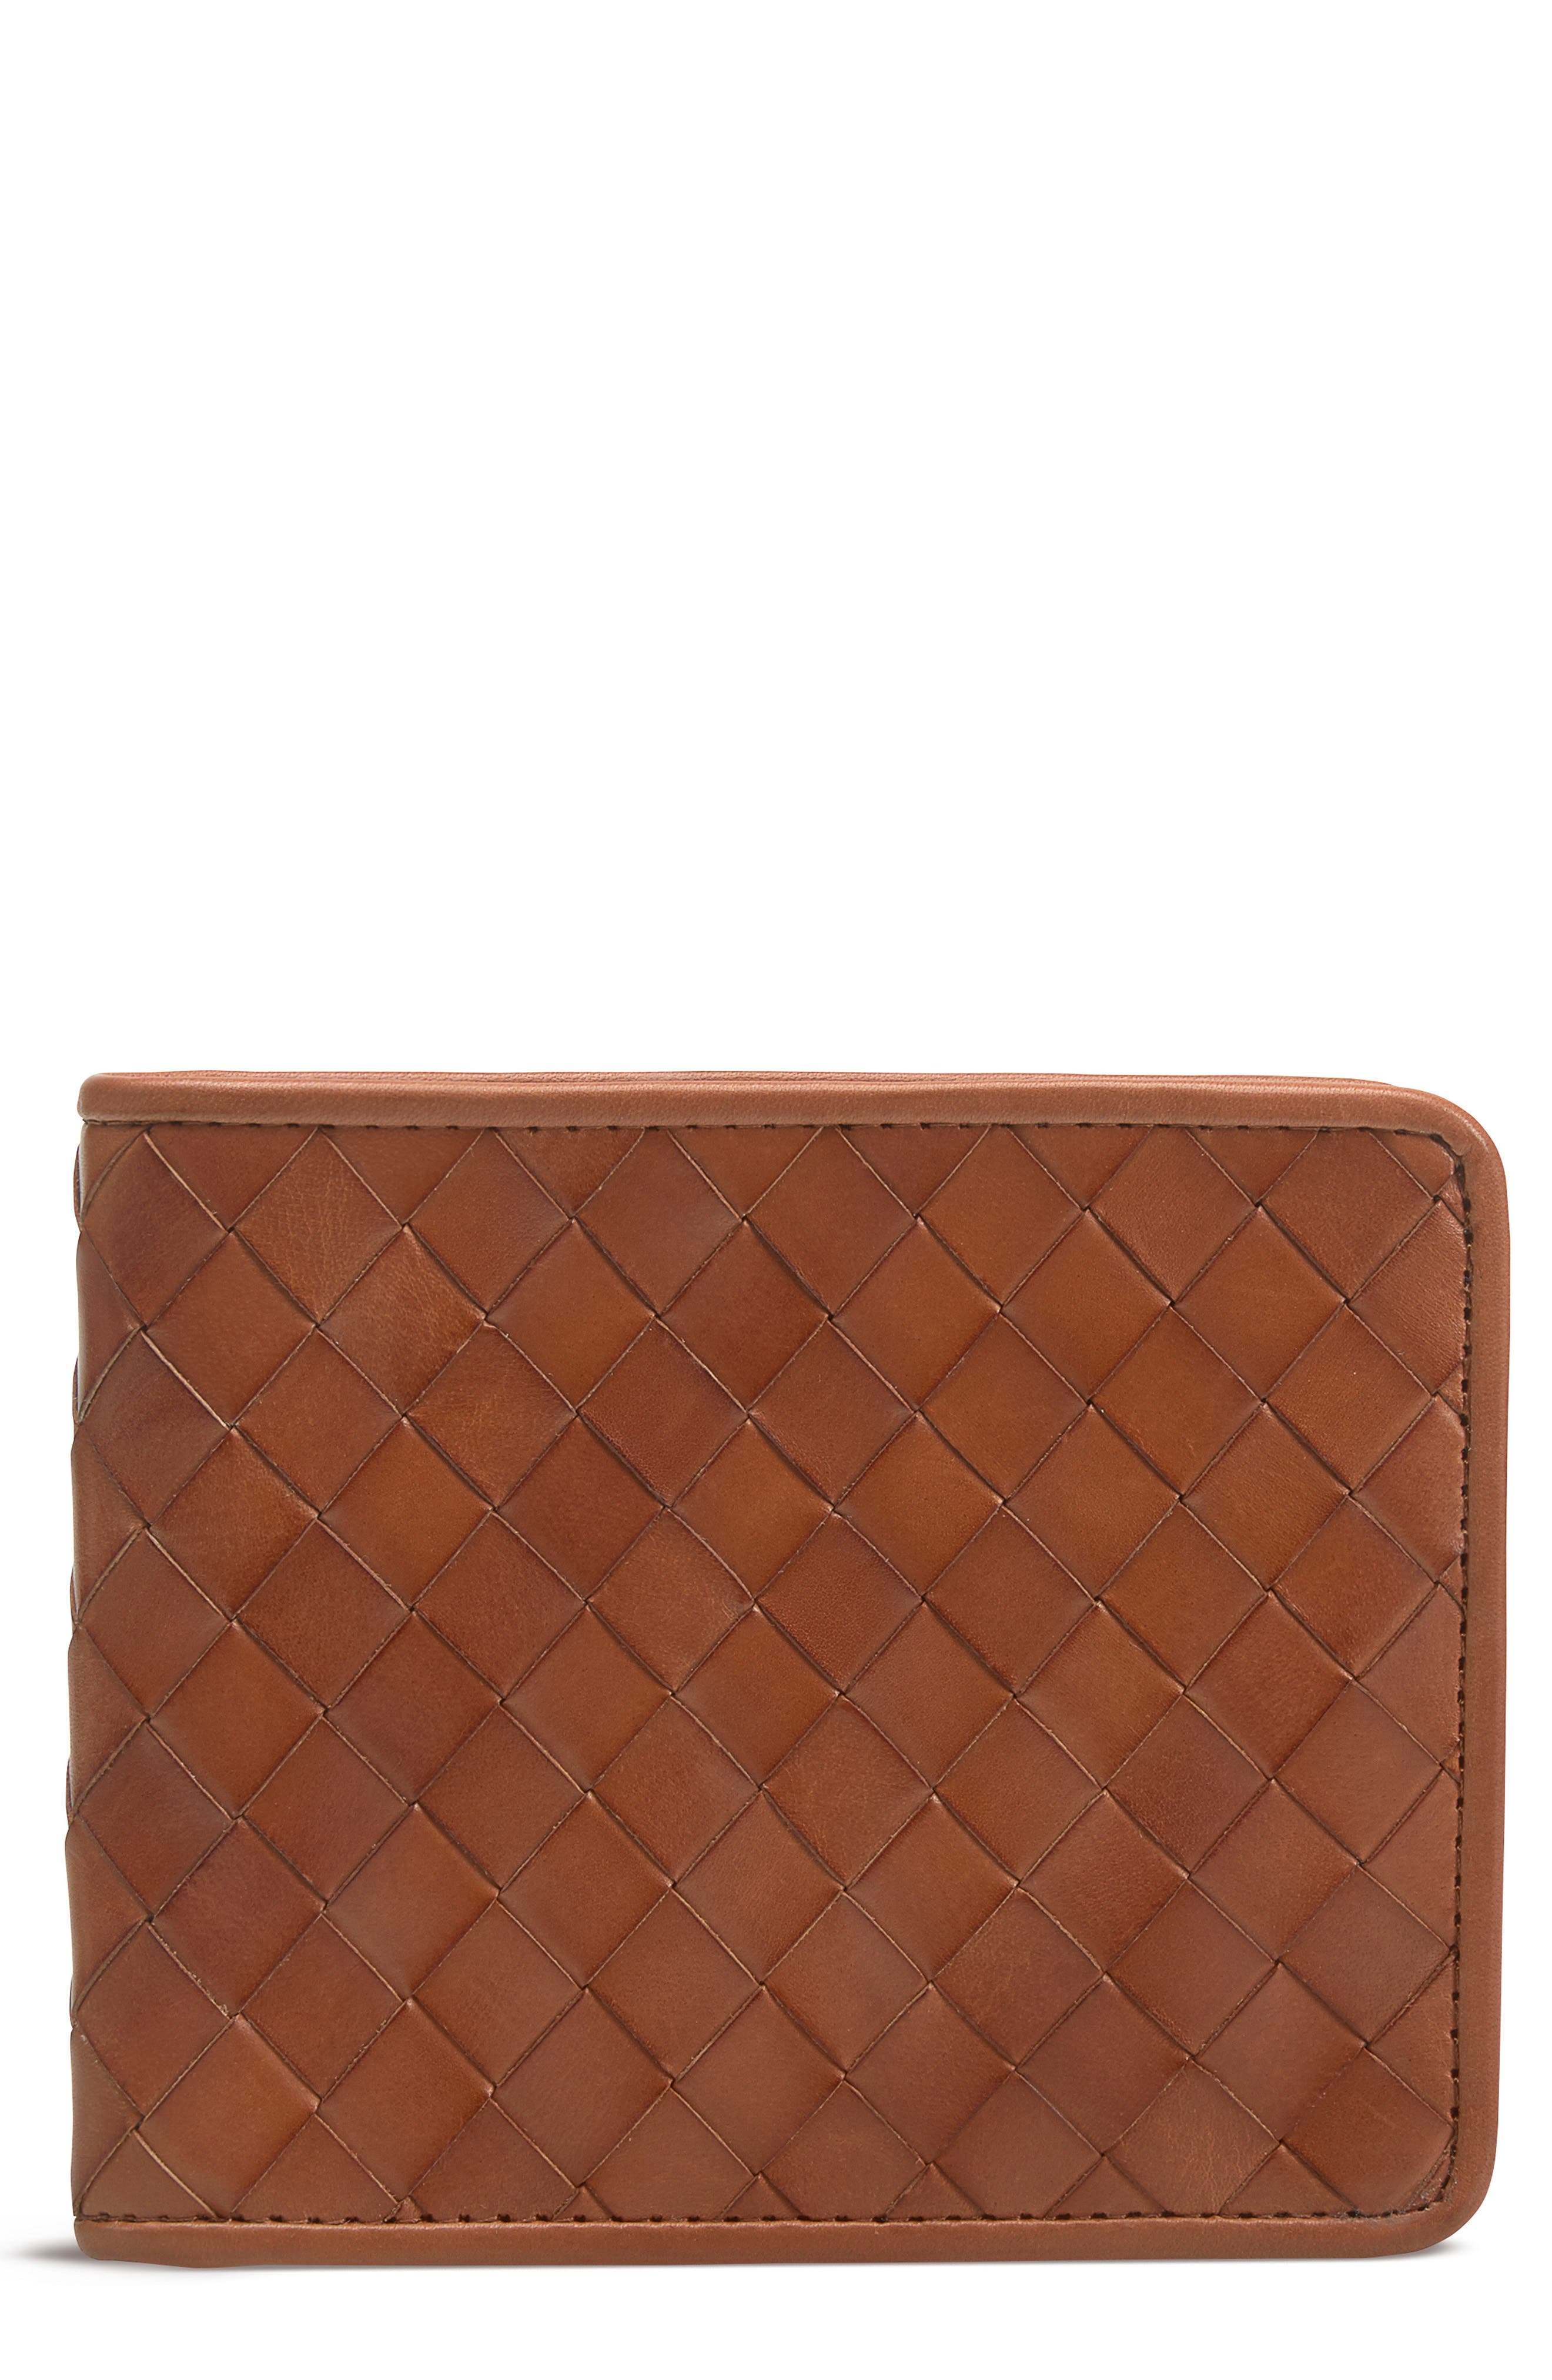 Woven Leather Wallet,                         Main,                         color, 240